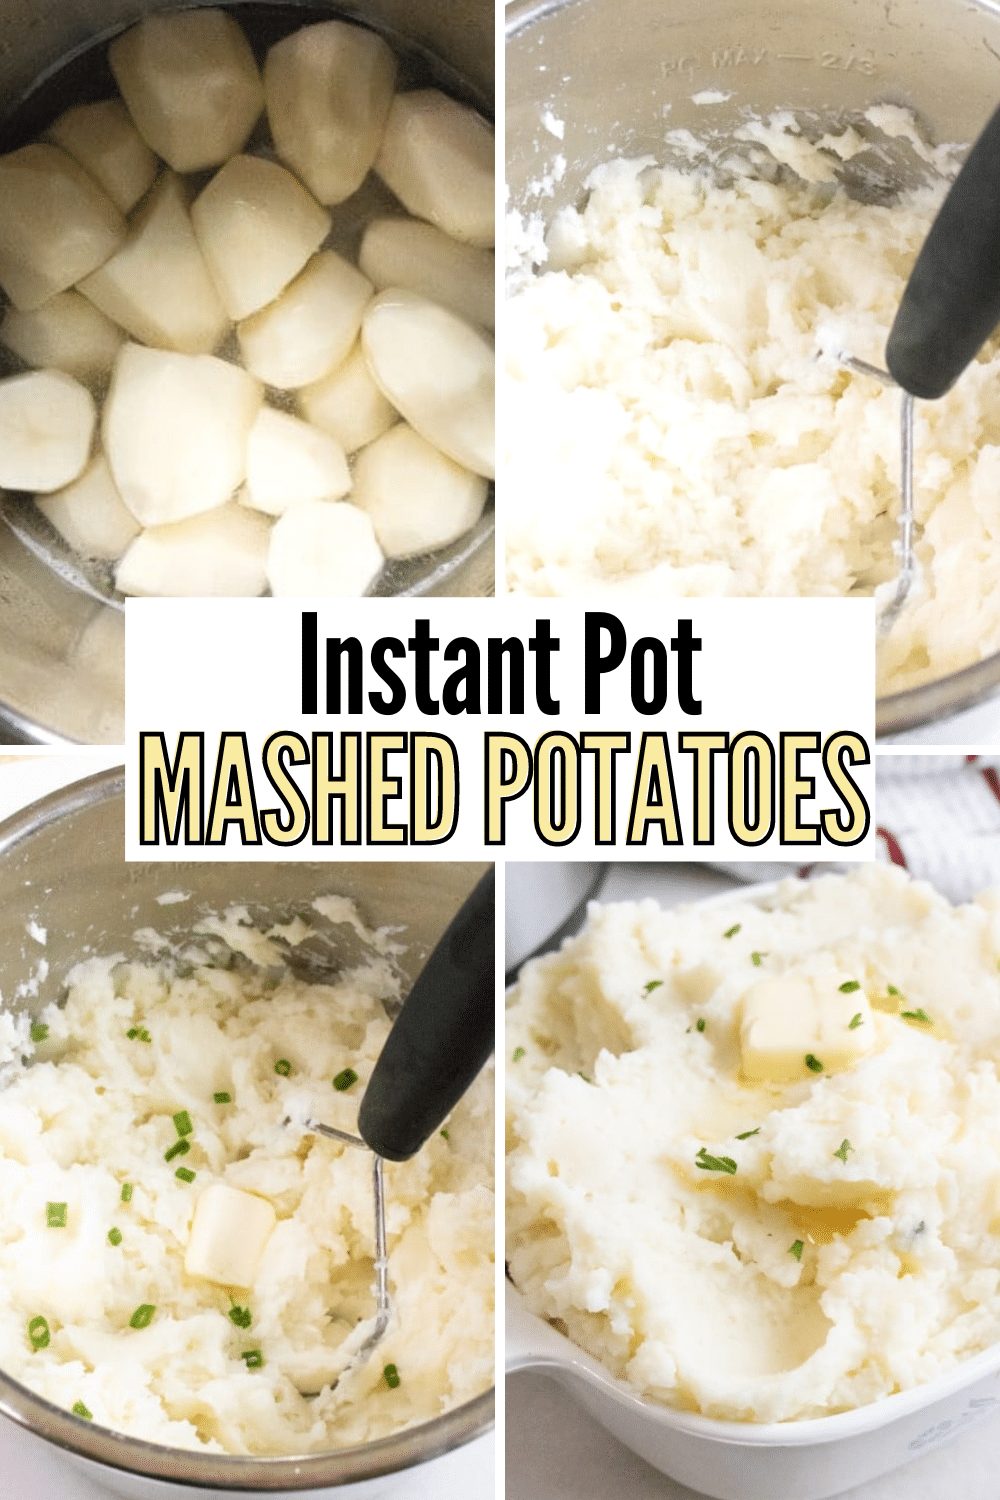 These Instant Pot Mashed Potatoes are faster and just as tasty as stovetop mashed potatoes. #sidedishes #potatoes #instantpot #pressurecooker via @wondermomwannab